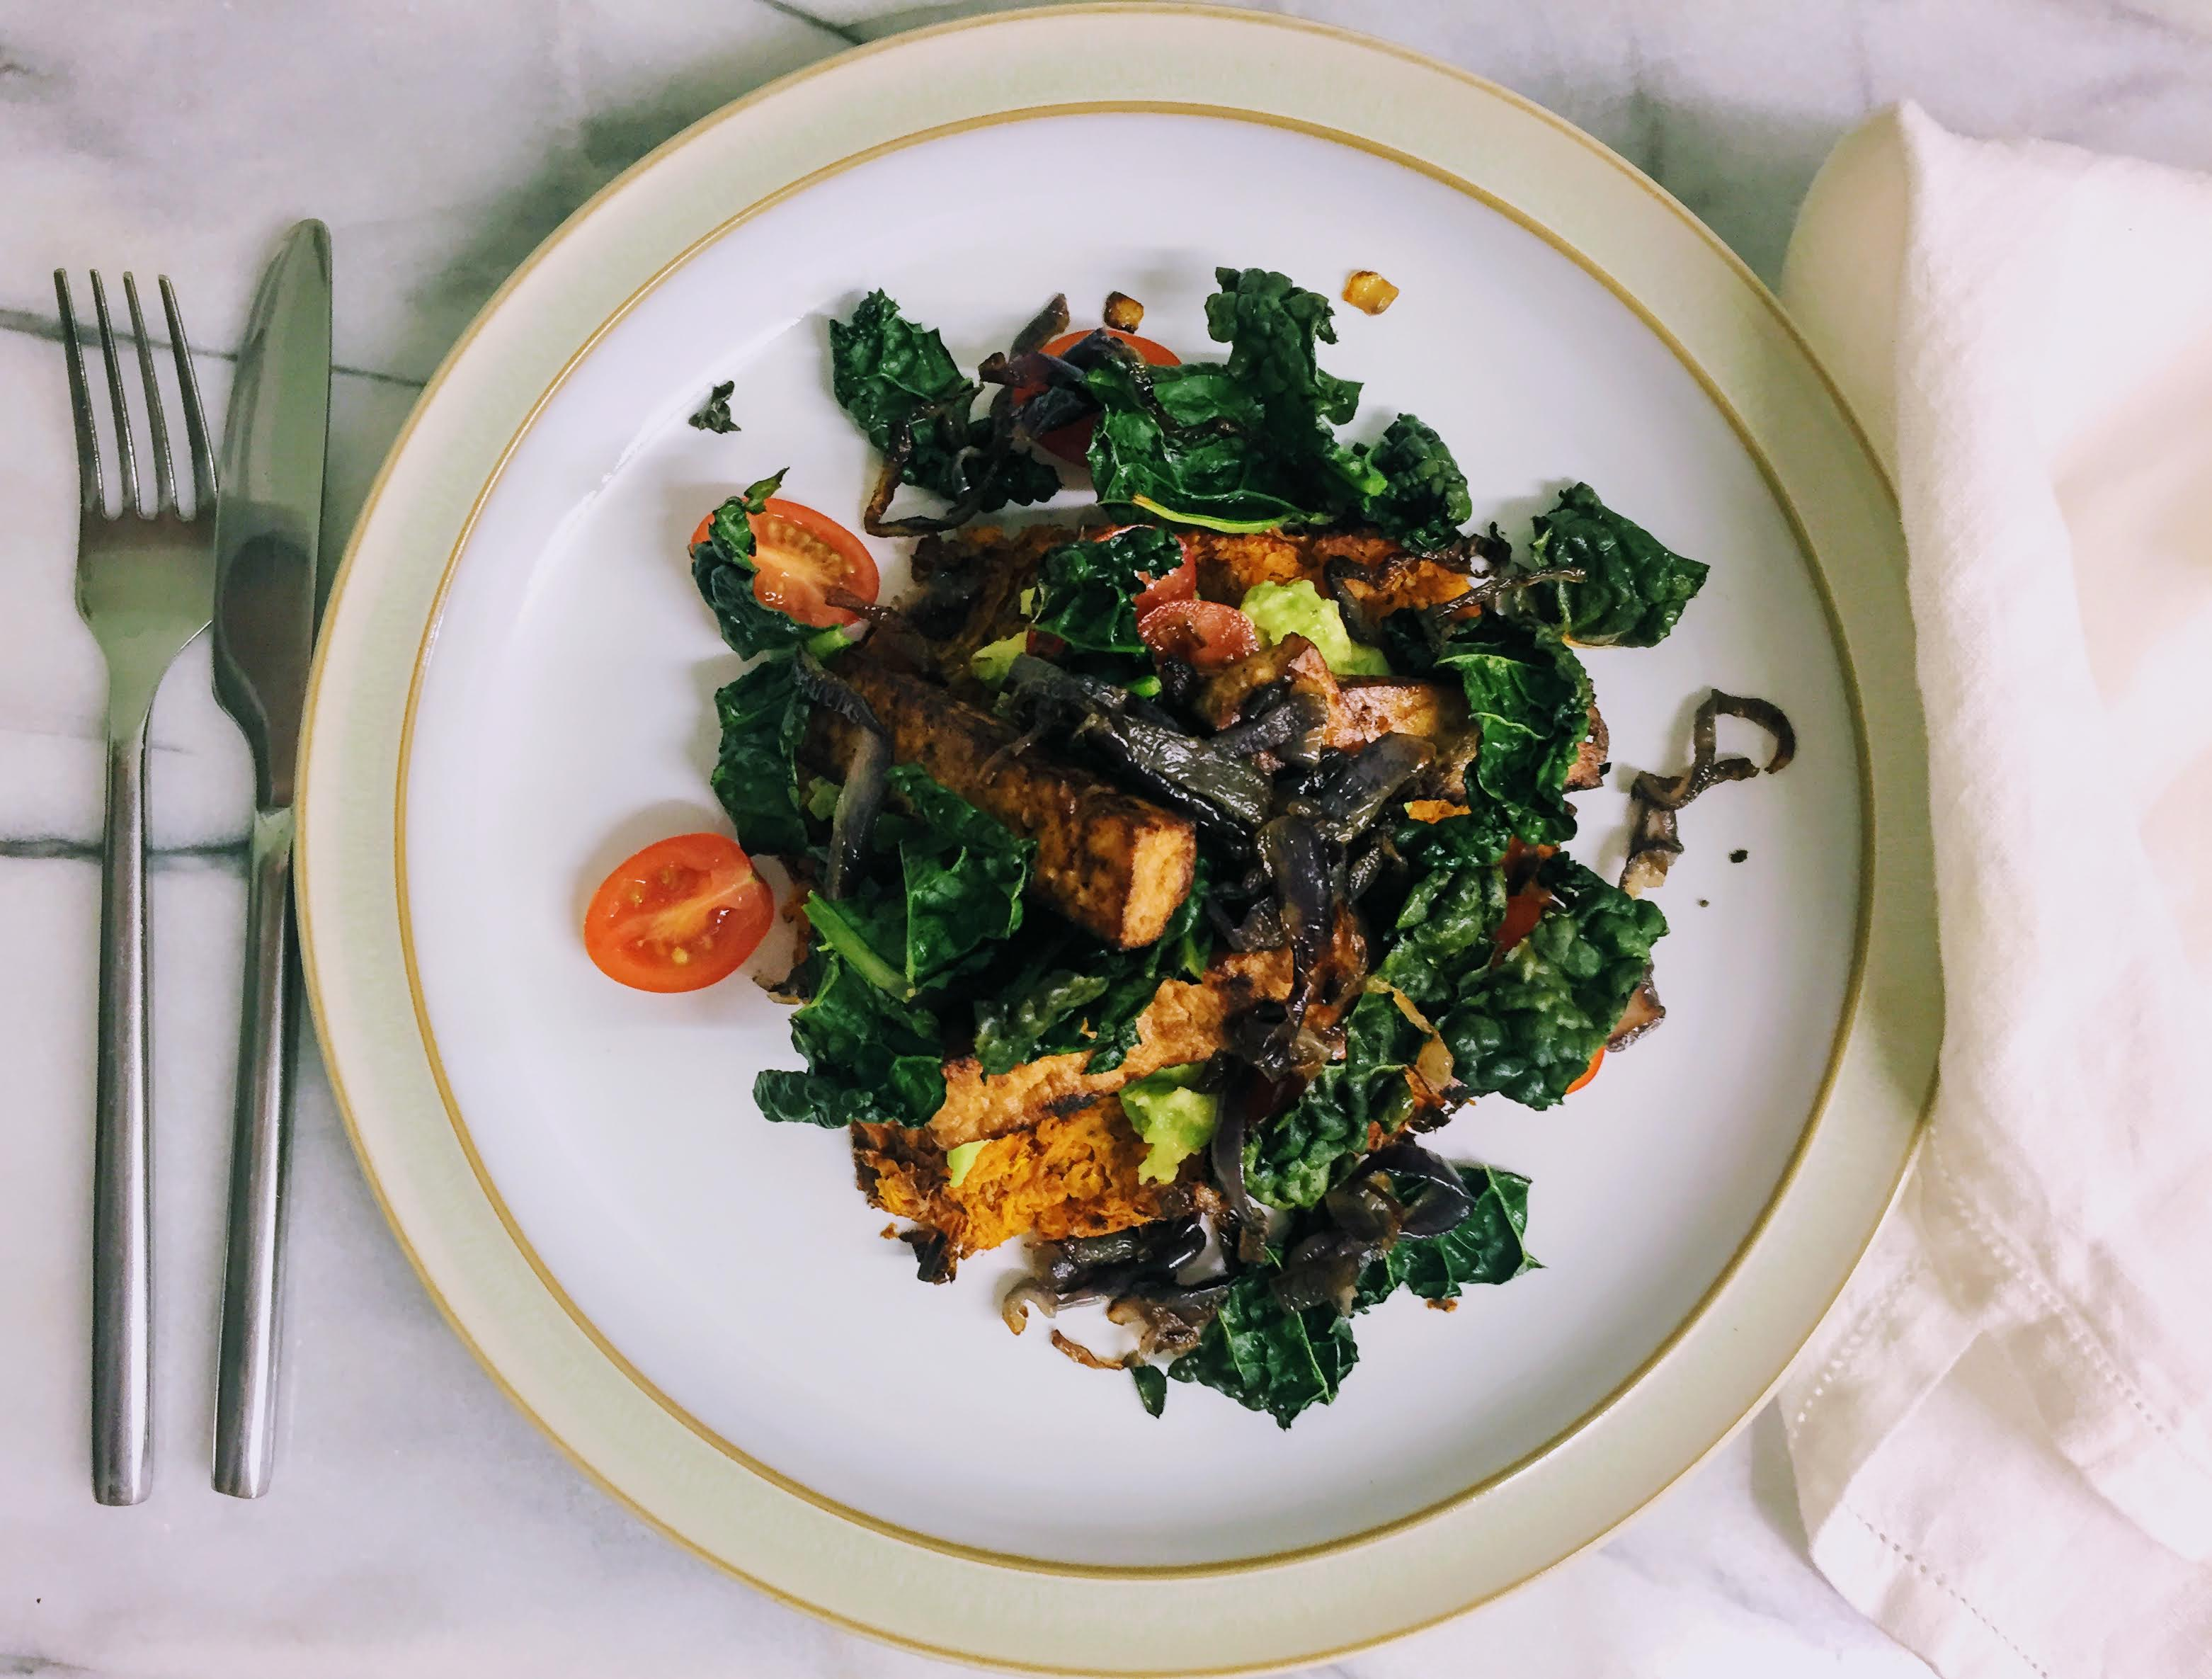 A white plate, photographed from above, with a tangle of dark green kale, caramelized red onions, cherry tomatotes, and charred batons of smoked tofu. There are flashes of lime green smashed avocado and the vibrant orange of the sweet potato rosti peaking out from underneath